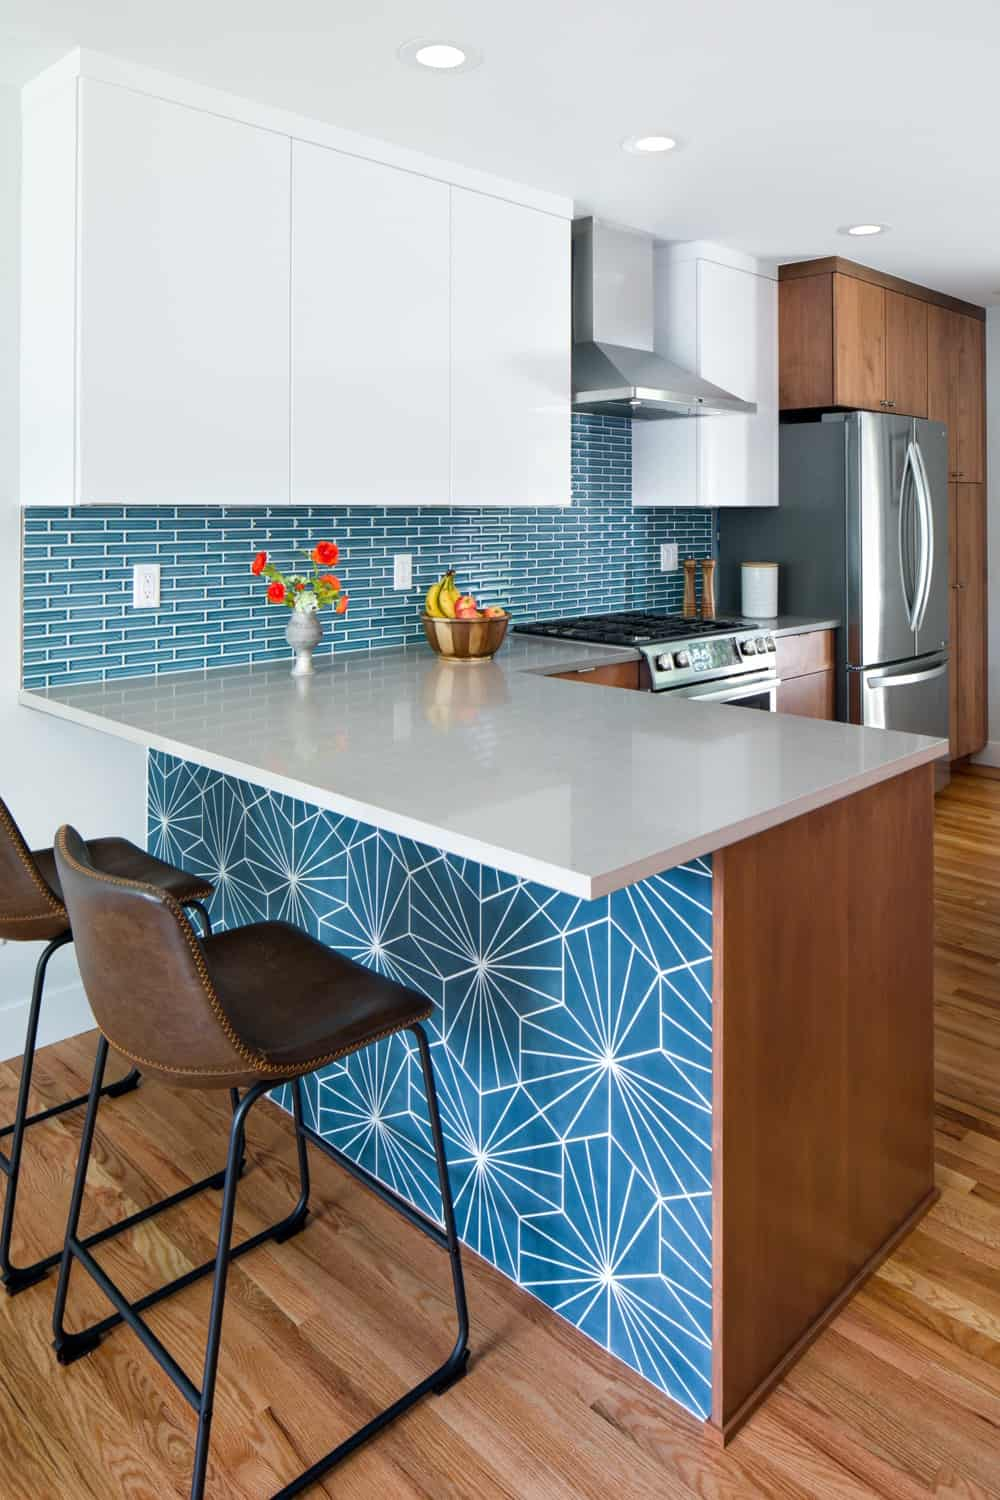 Melton Design Build Kitchen Remodel - Peninsula Tile Detail Boulder Colorado